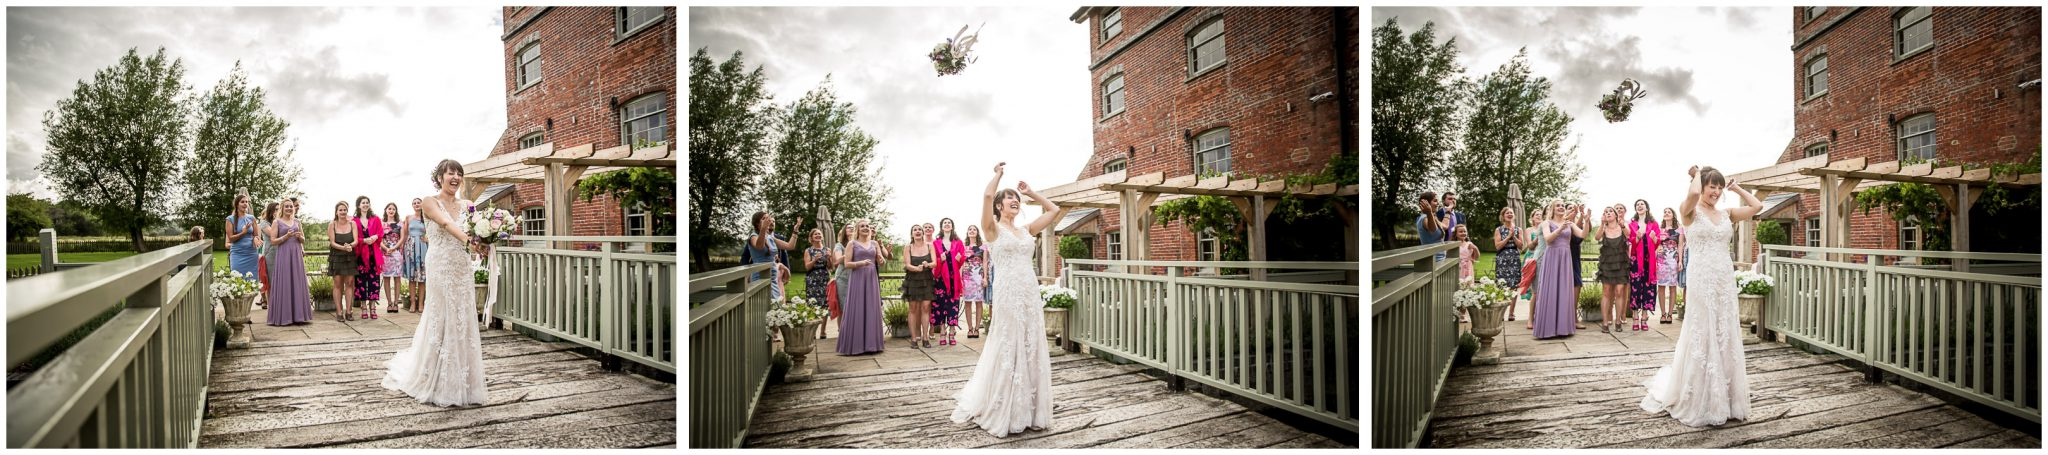 Sopley Mill wedding photography throwing the bouquet sequence of images